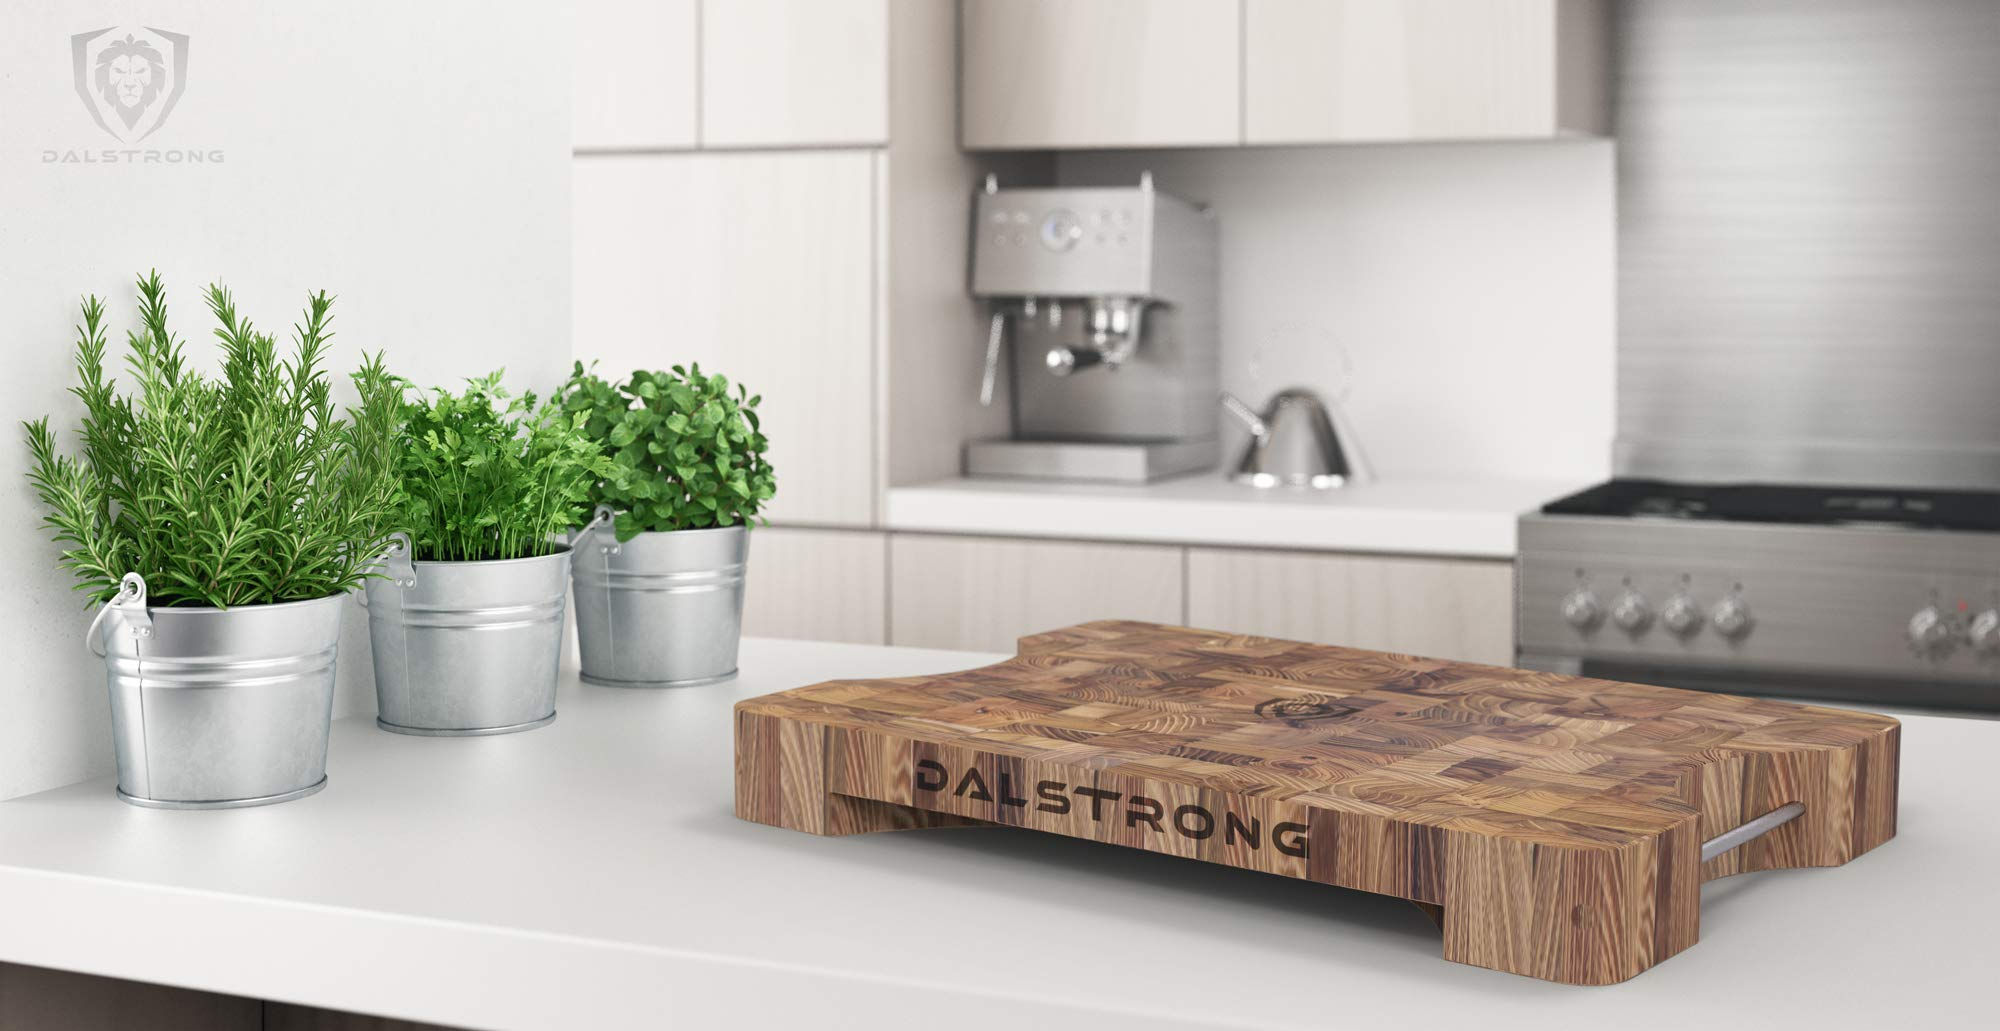 DALSTRONG Lionswood End-Grain Teak Cutting Board - Large - w/Steel Carrying Handles by Dalstrong (Image #6)